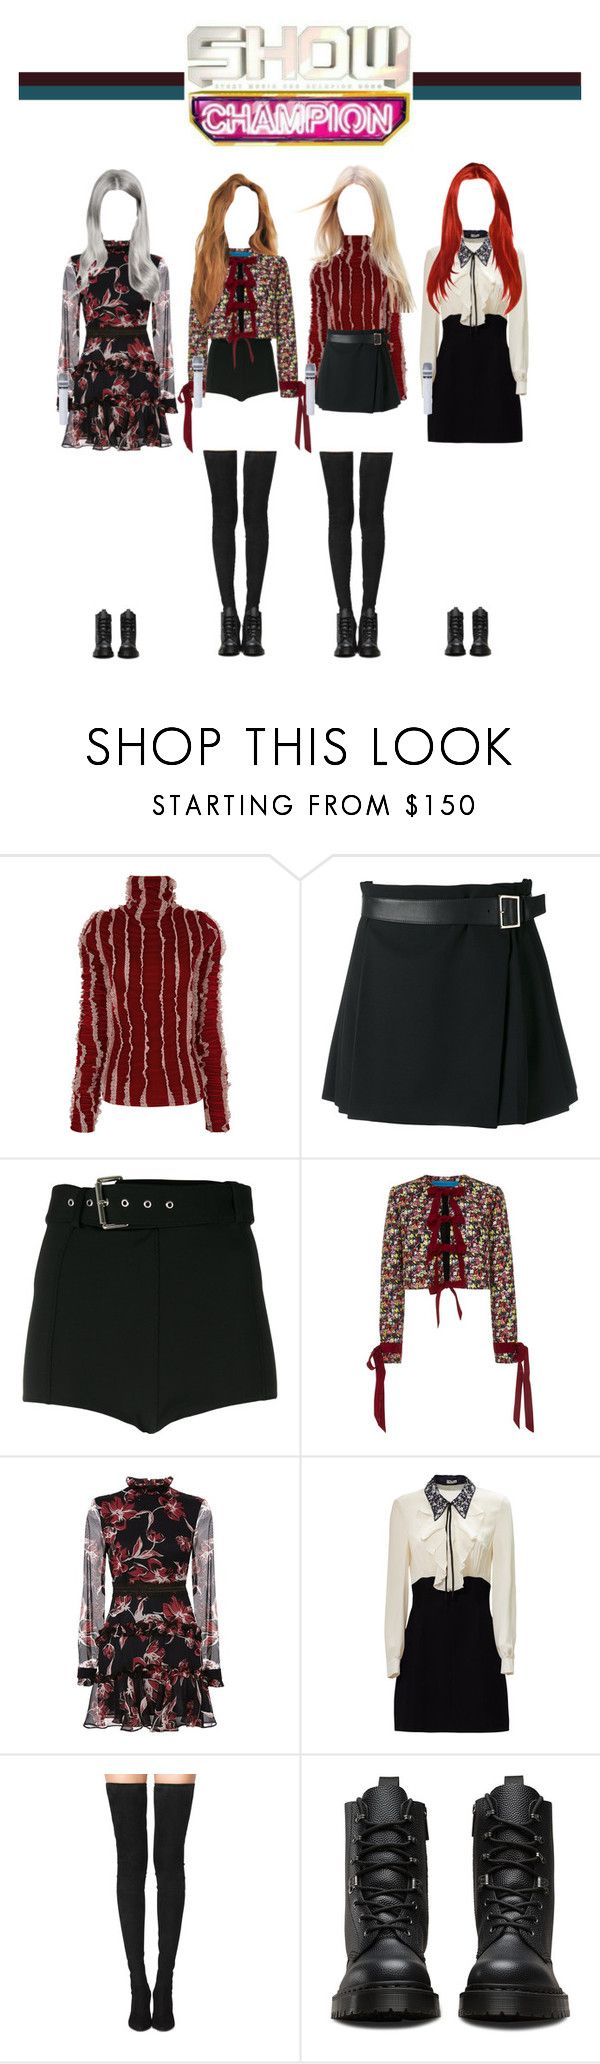 """[ Show Champion ] Do You Wanna Play ?"" by officialsrjh ❤ liked on Polyvore featuring Y/Project, Alexander McQueen, Versus, Jonathan Cohen, Nicholas, Miu Miu, Tamara Mellon, Dr. Martens, JennieSRJH and HaruSRJH"